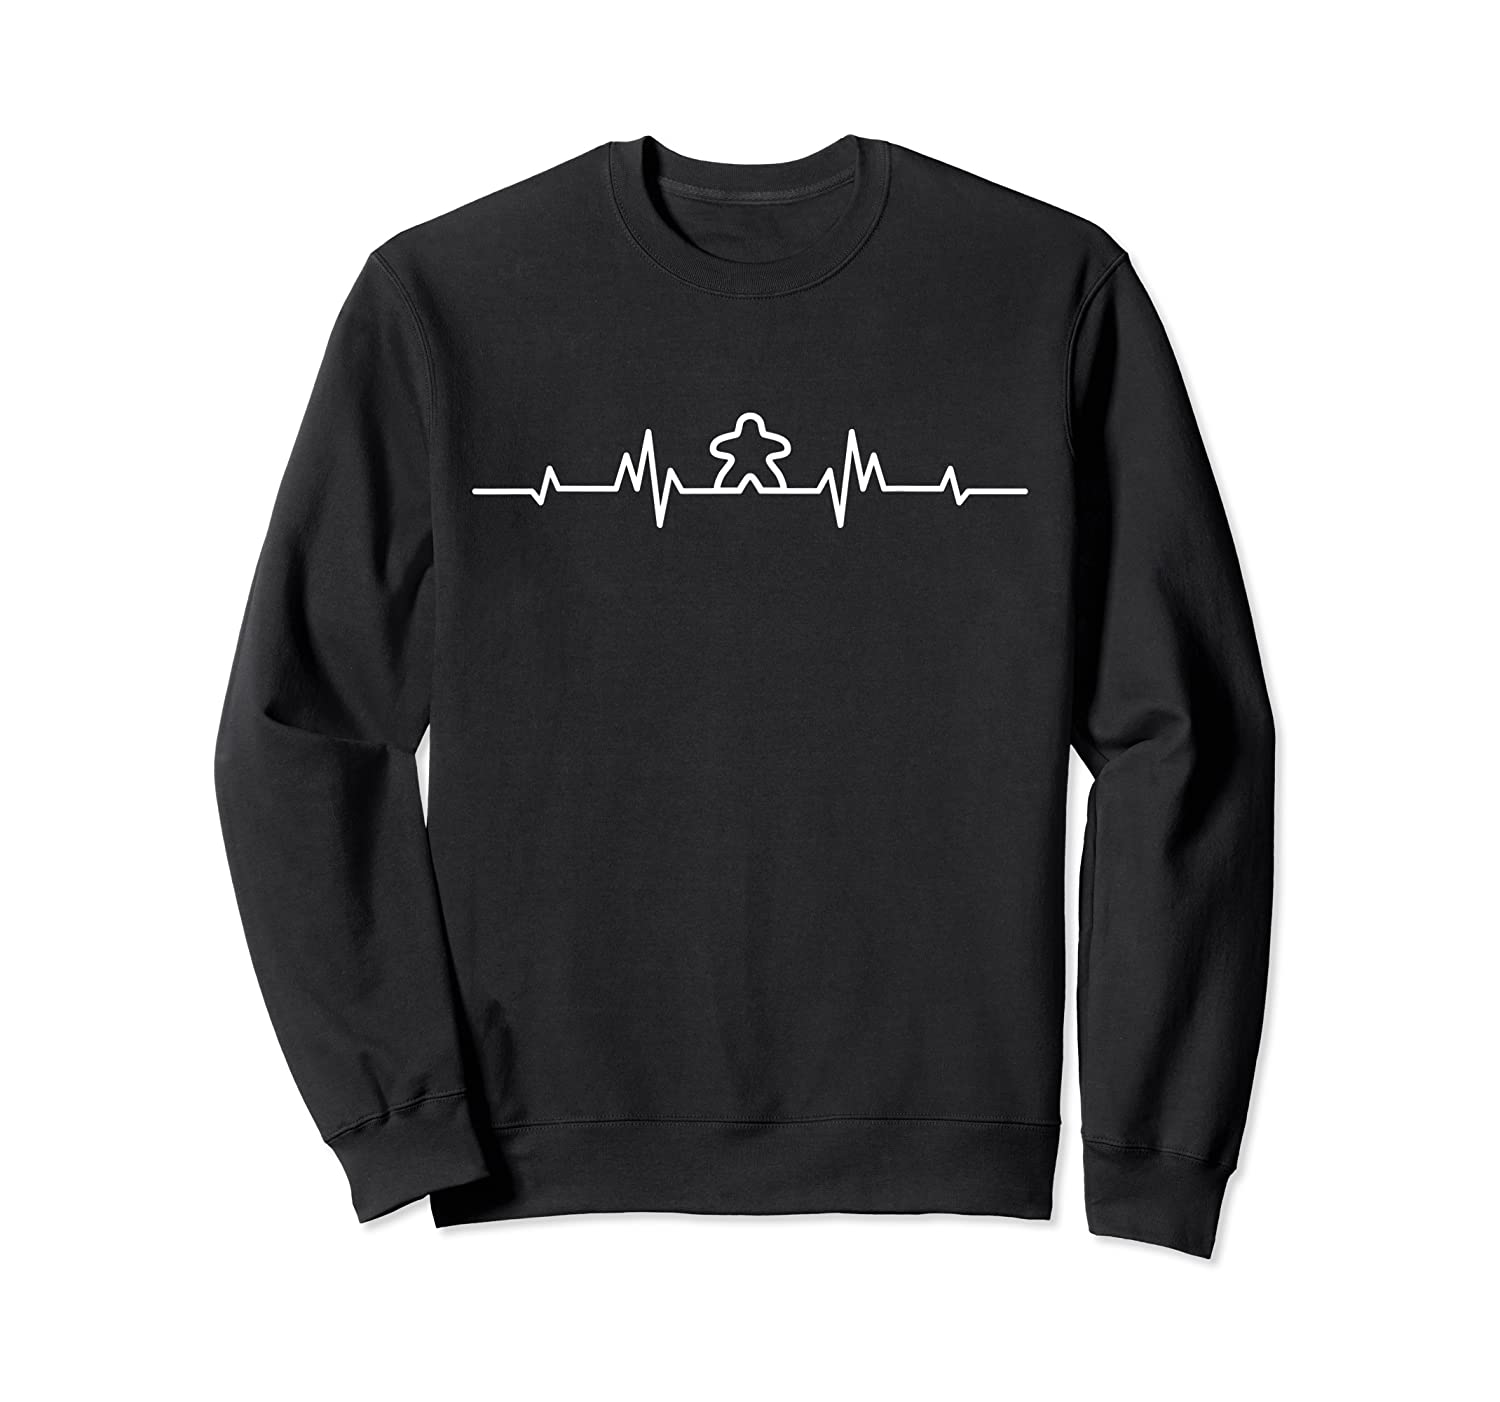 Board Game Heartbeat Meeple Lover Player Figure Gift Shirts Crewneck Sweater